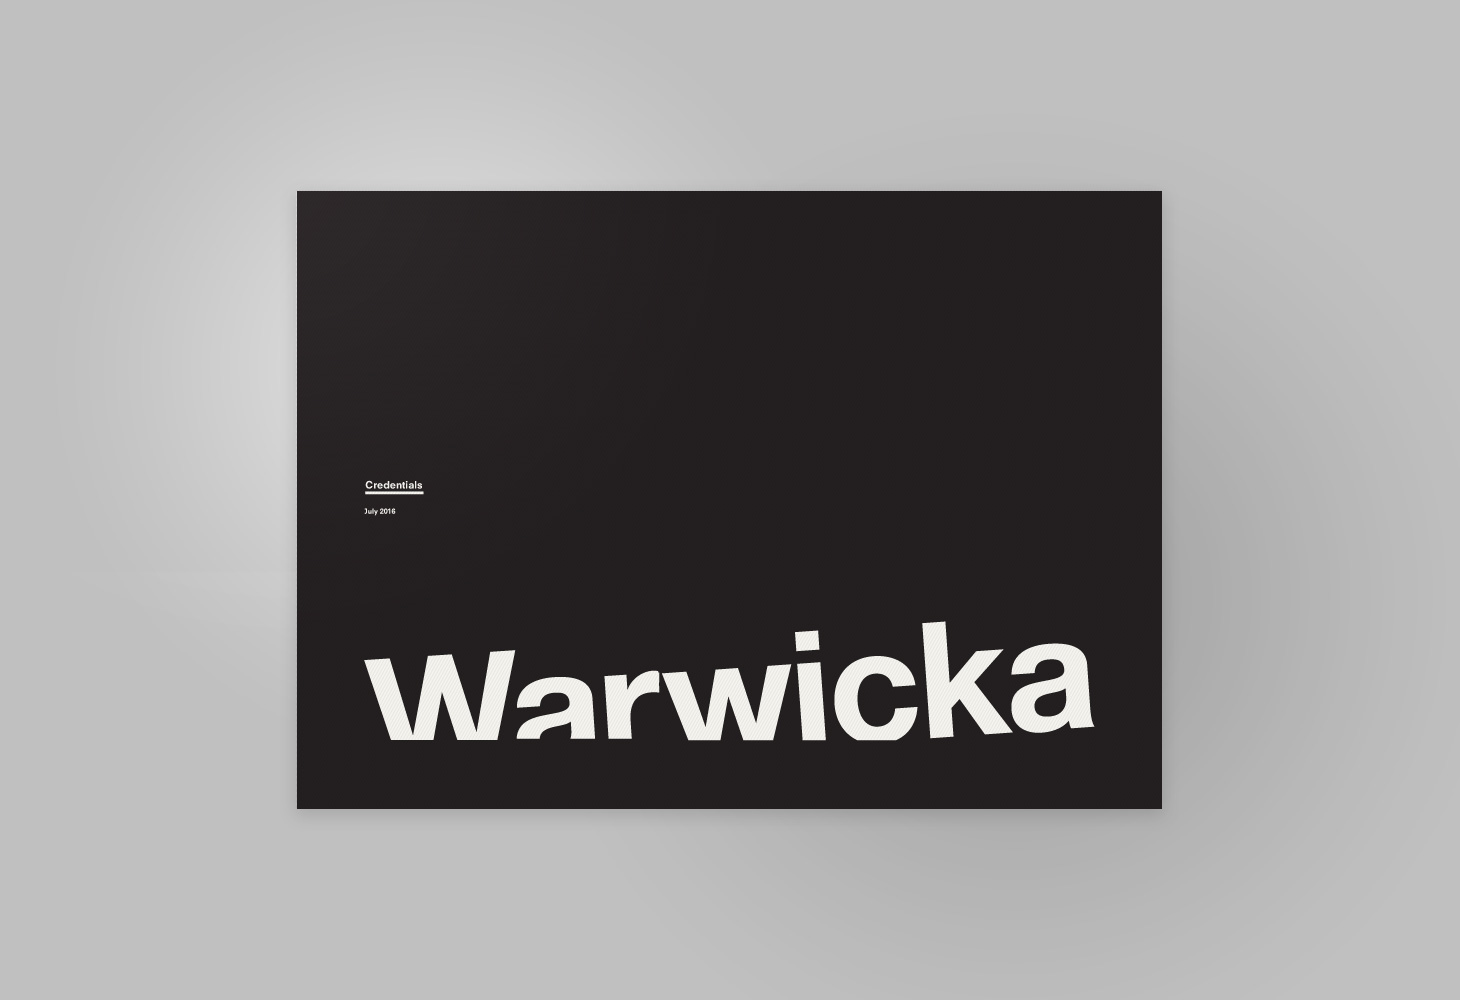 Warwicka - Credentials 2016 - Cover